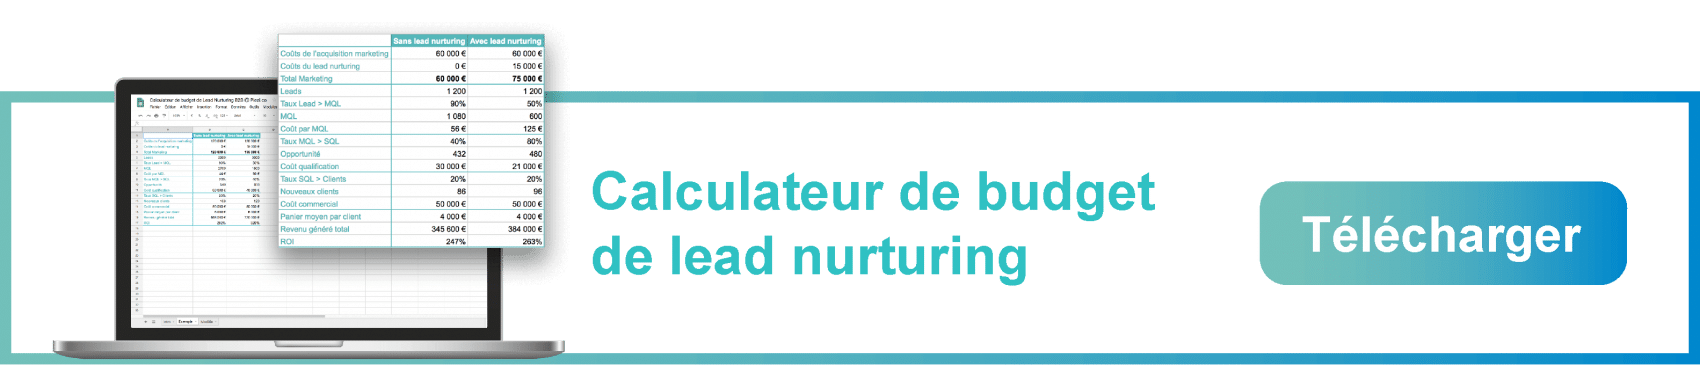 Télécharger le calculateur de budget de lead nurturing